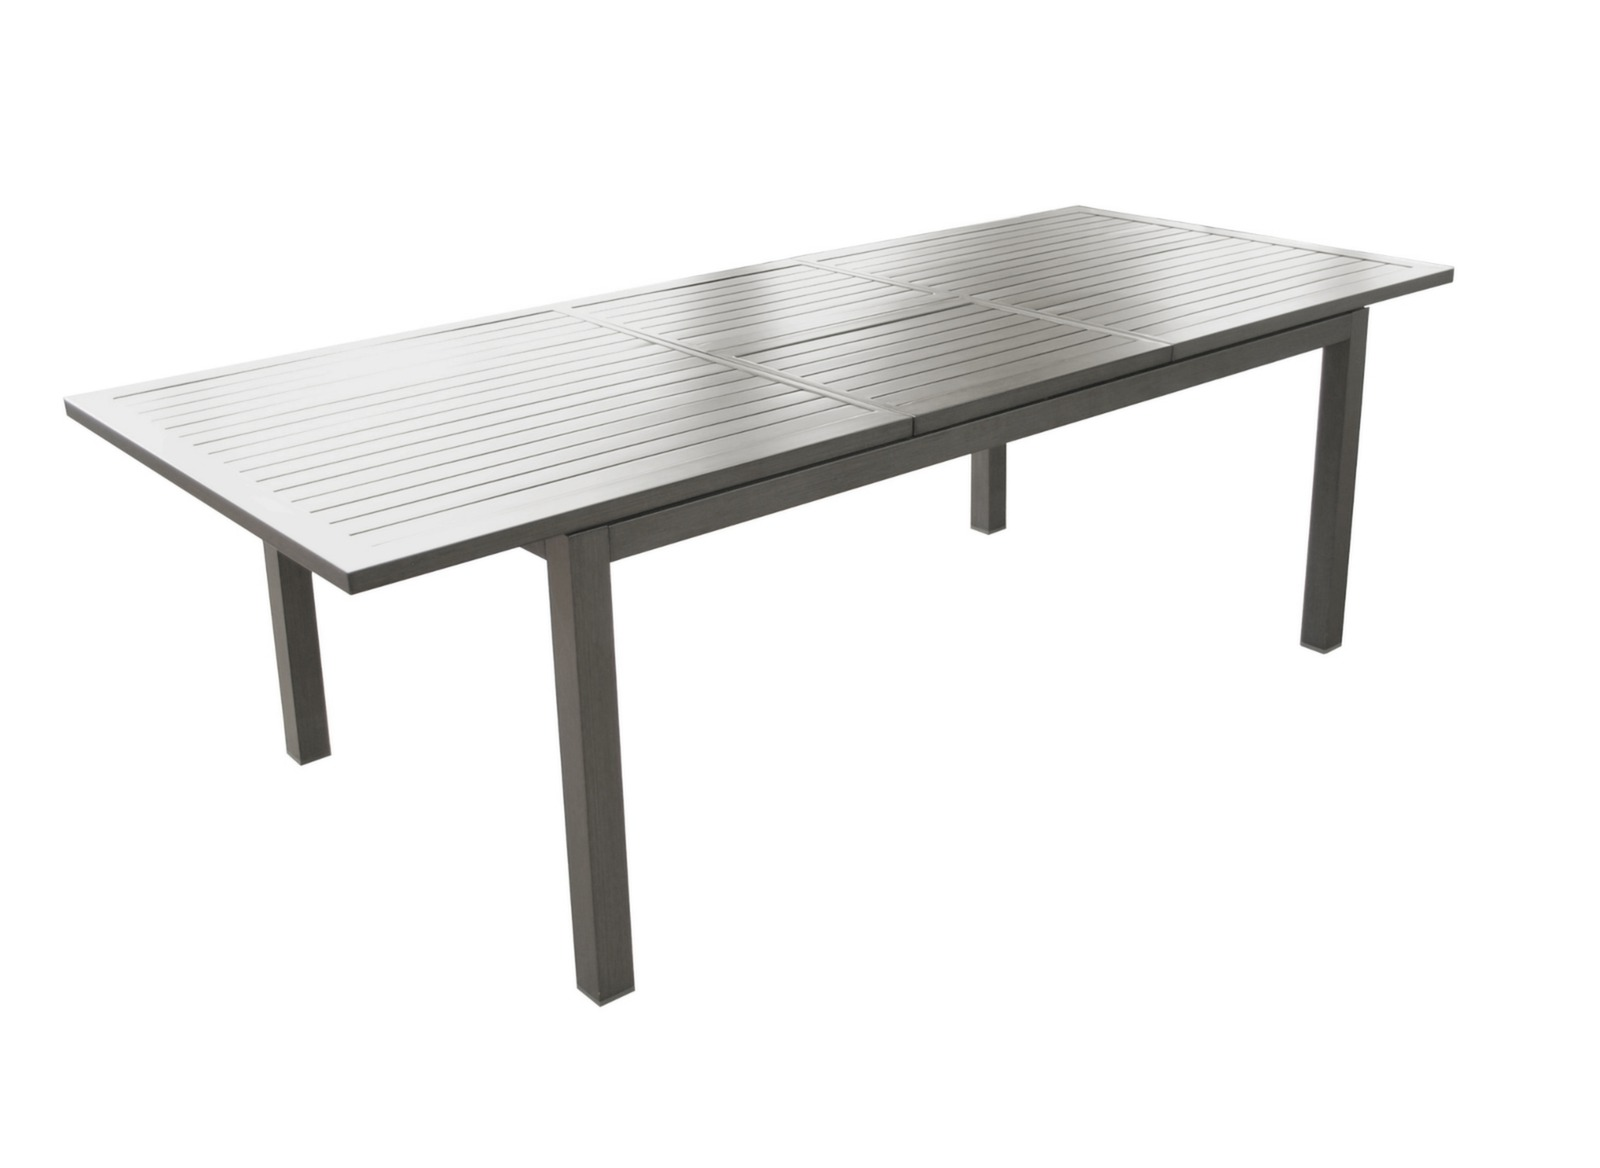 Table de jardin rectangle Trieste 180/240cm - Gamme Alizé - Proloisirs